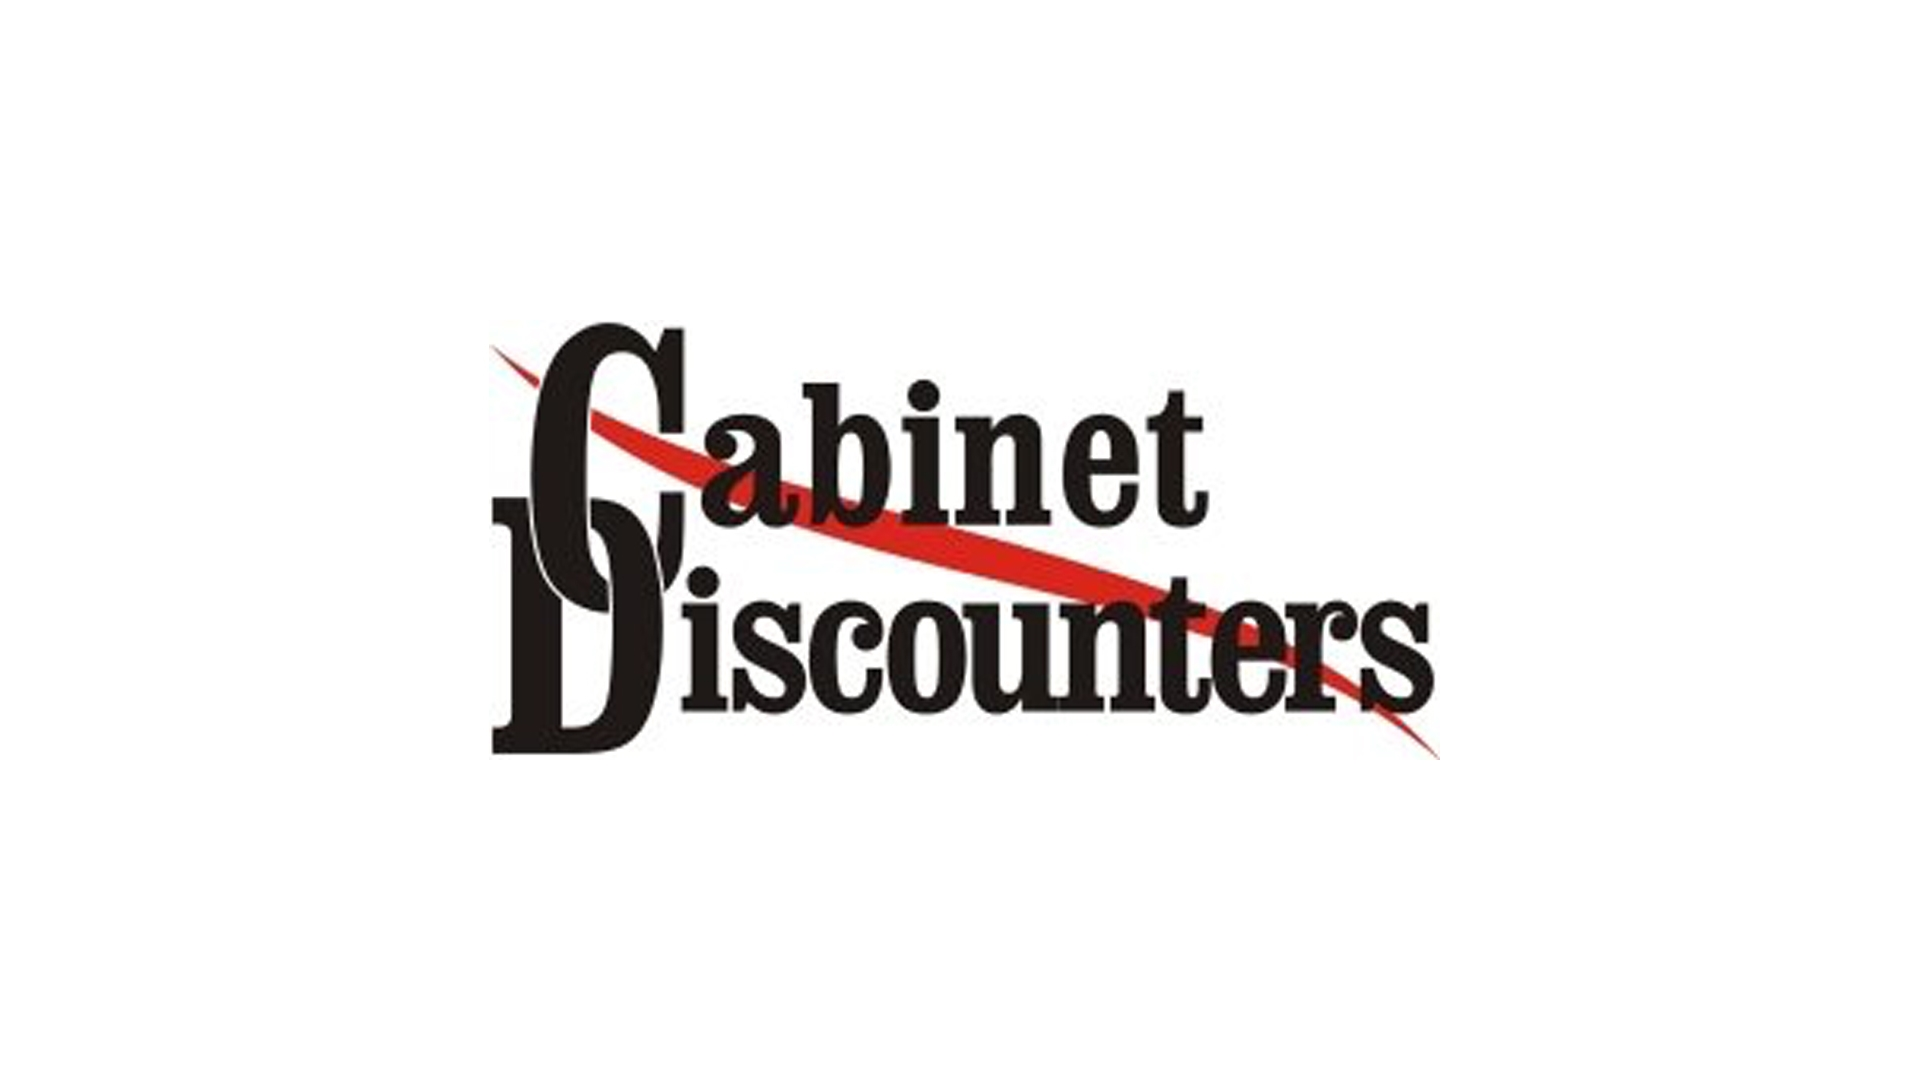 ESB Advertising Agency Is Working With Cabinet Discounters